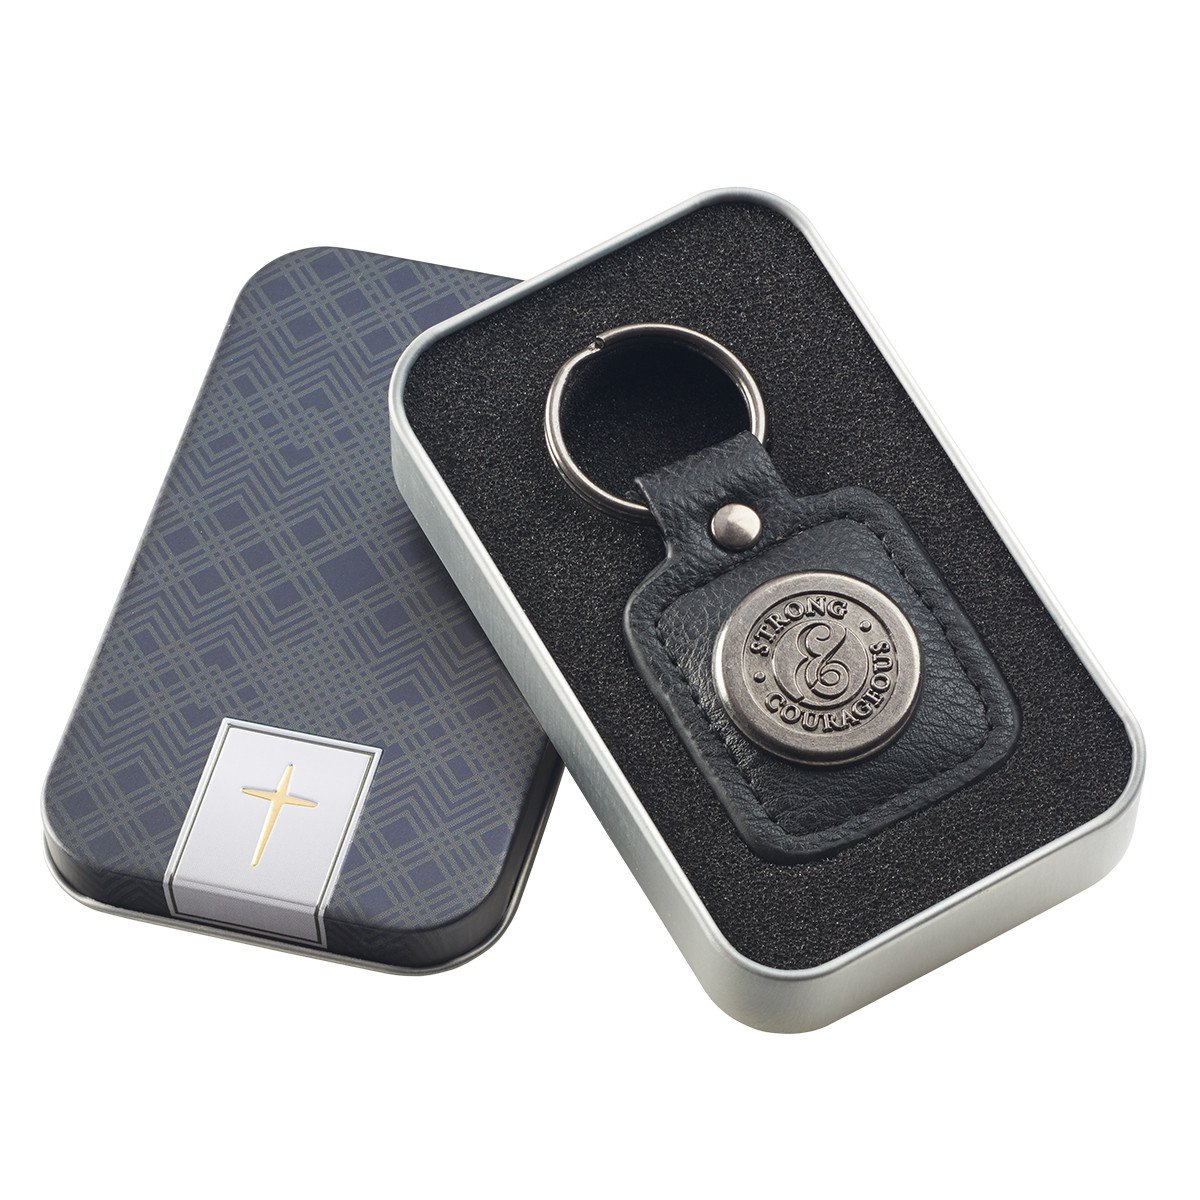 Strong and Courageous LuxLeather Keychain in Tin Gift Box 00_WCLMCNHE_02